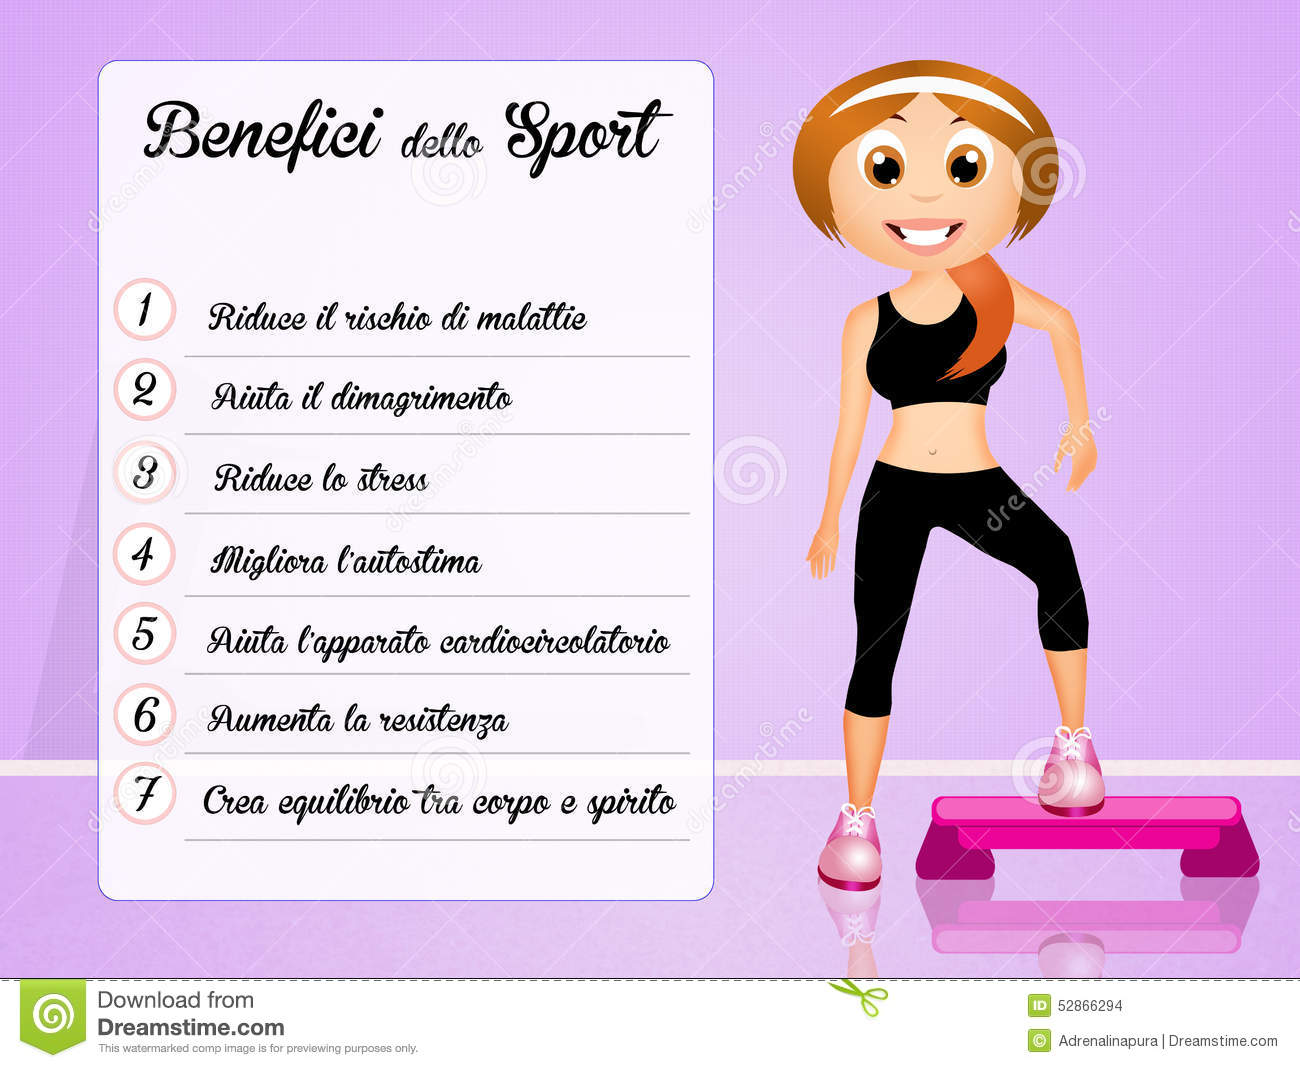 benefit of sport The health benefits of playing sports include proper weight management, efficient  functioning of the heart, controlled diabetes, lower.